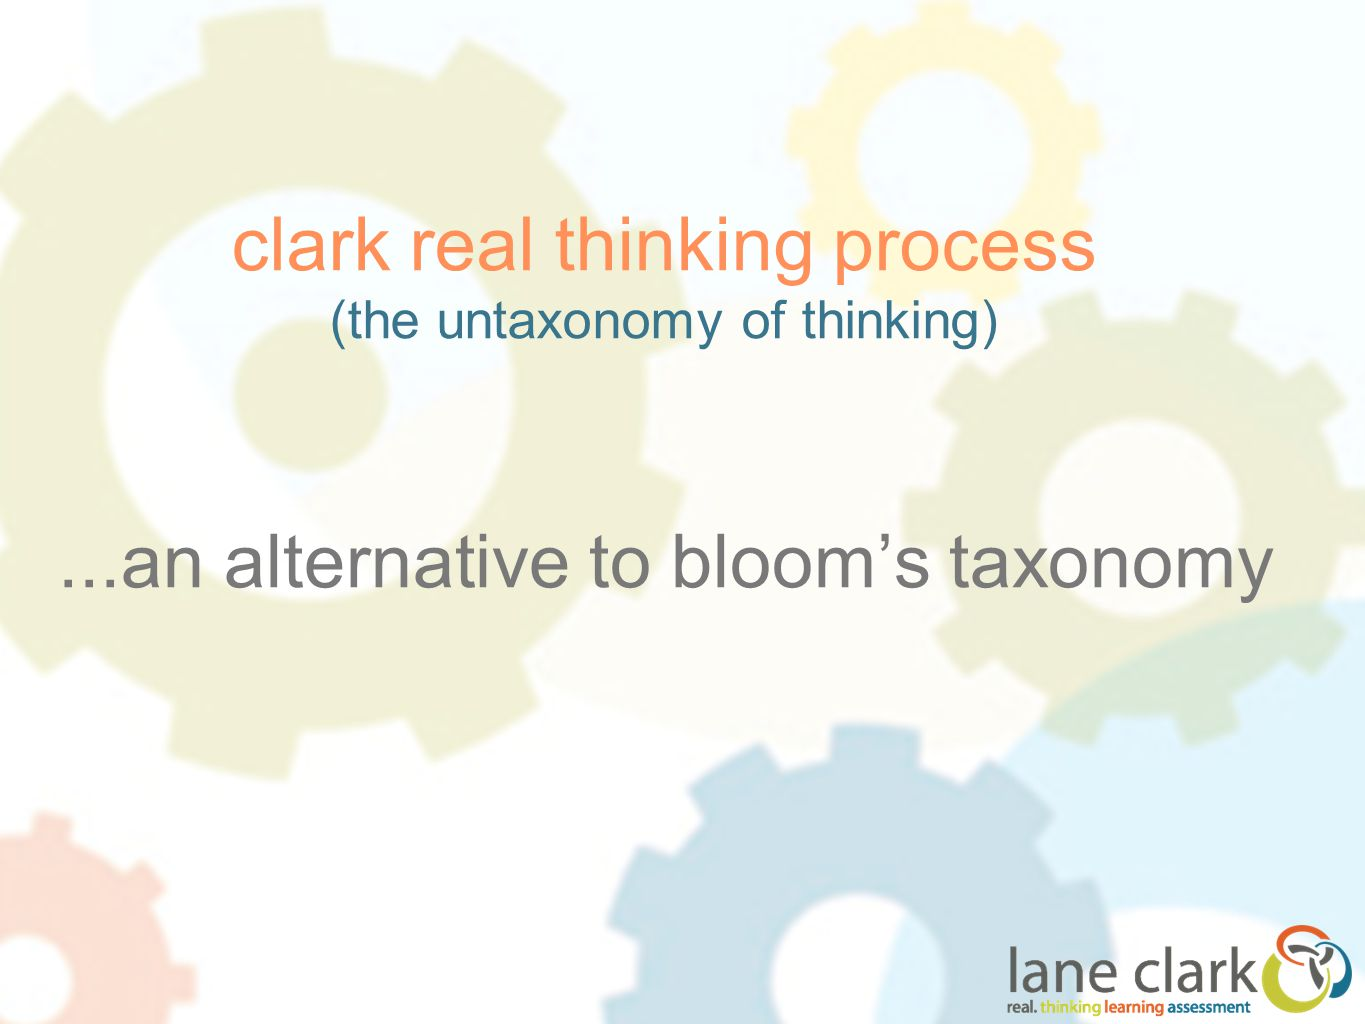 clark real thinking process (the untaxonomy of thinking)...an alternative to bloom's taxonomy